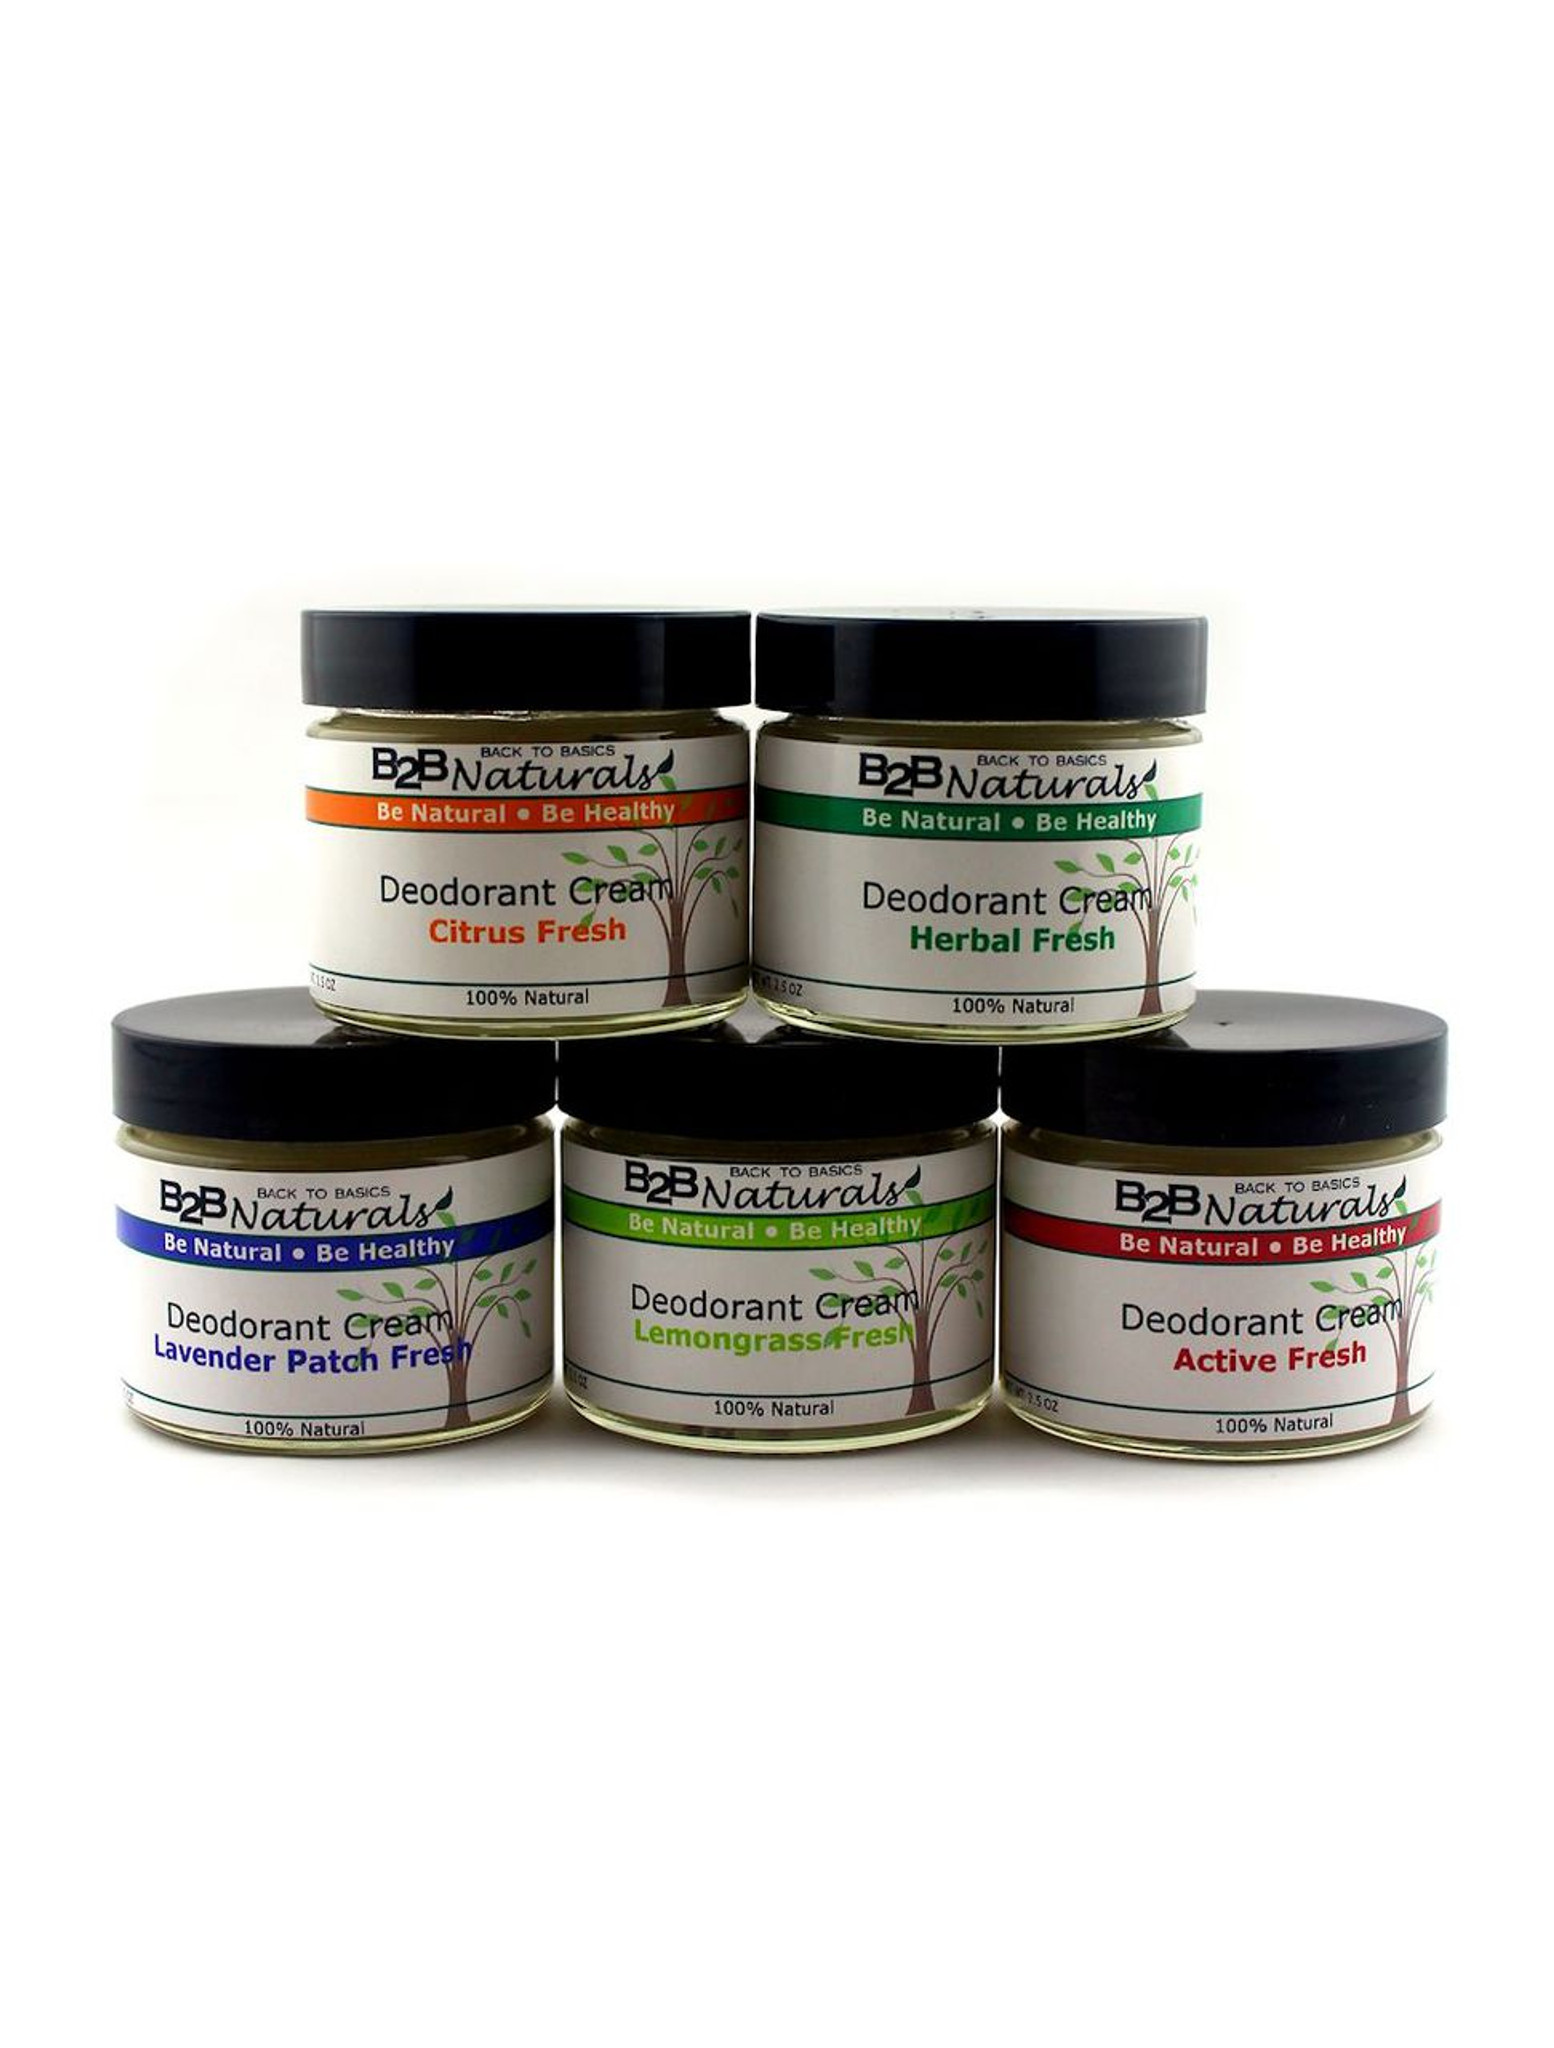 How To Make All Natural Organic Deodorant